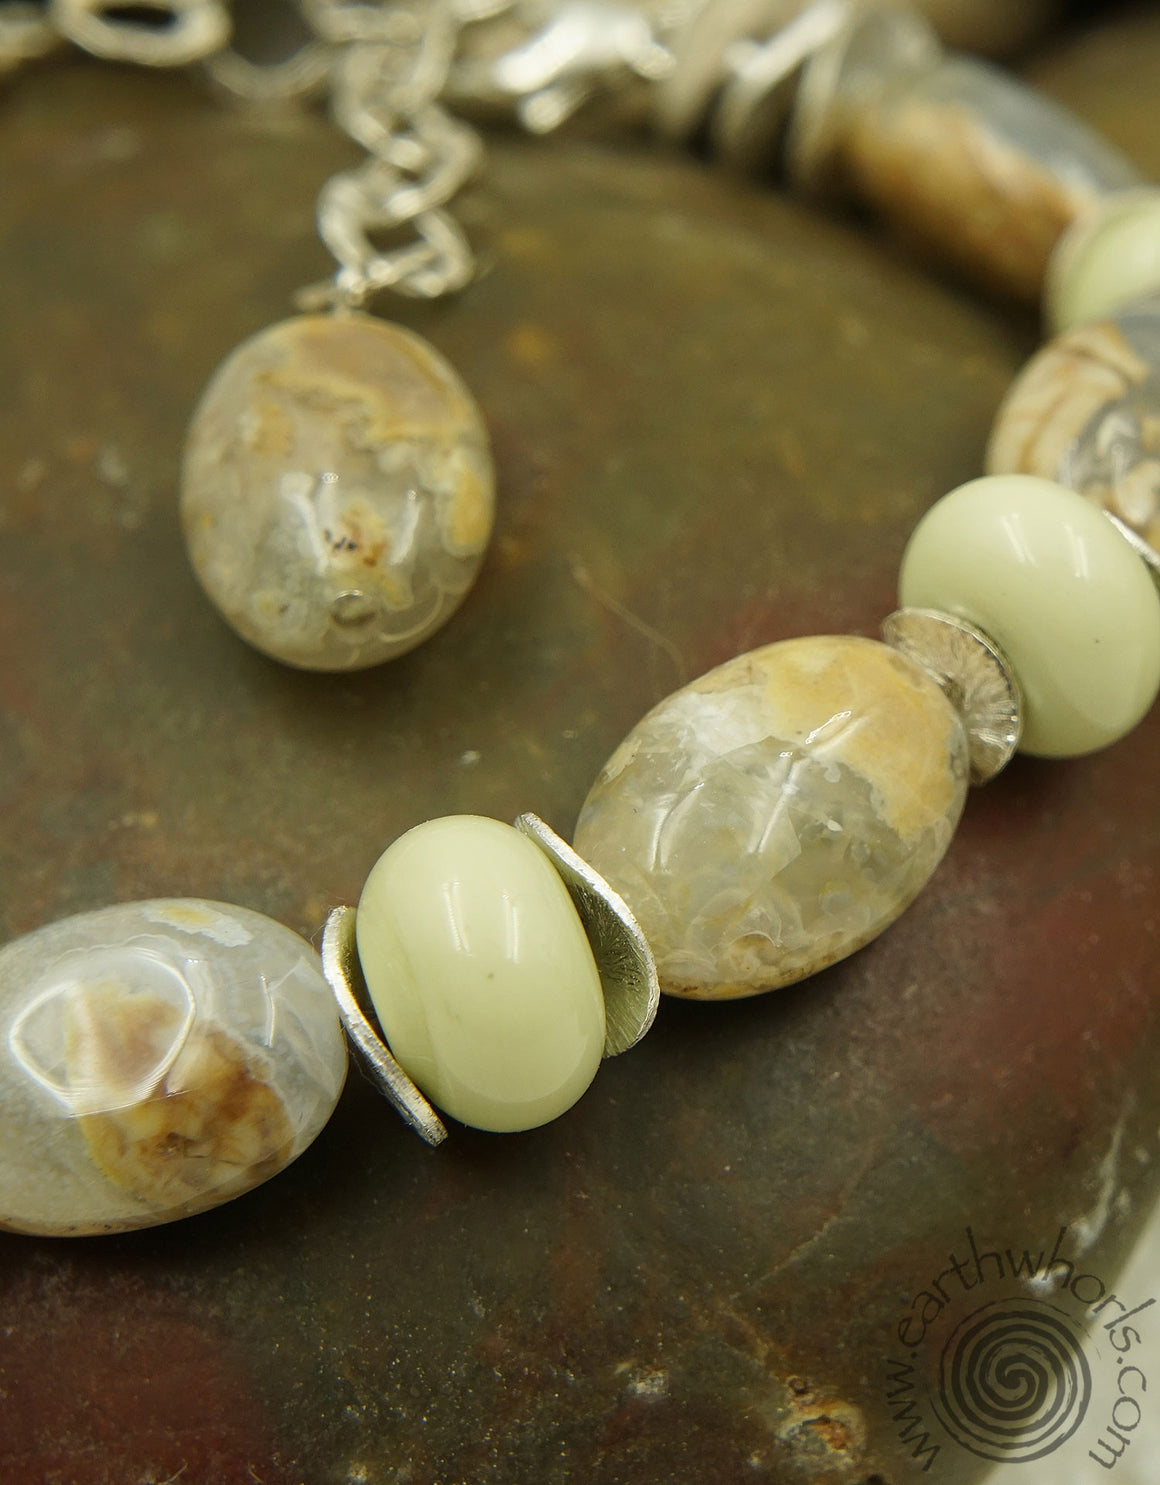 Chalcedony, Handmade Glass & Sterling Silver Earrings - EarthWhorls, LLC